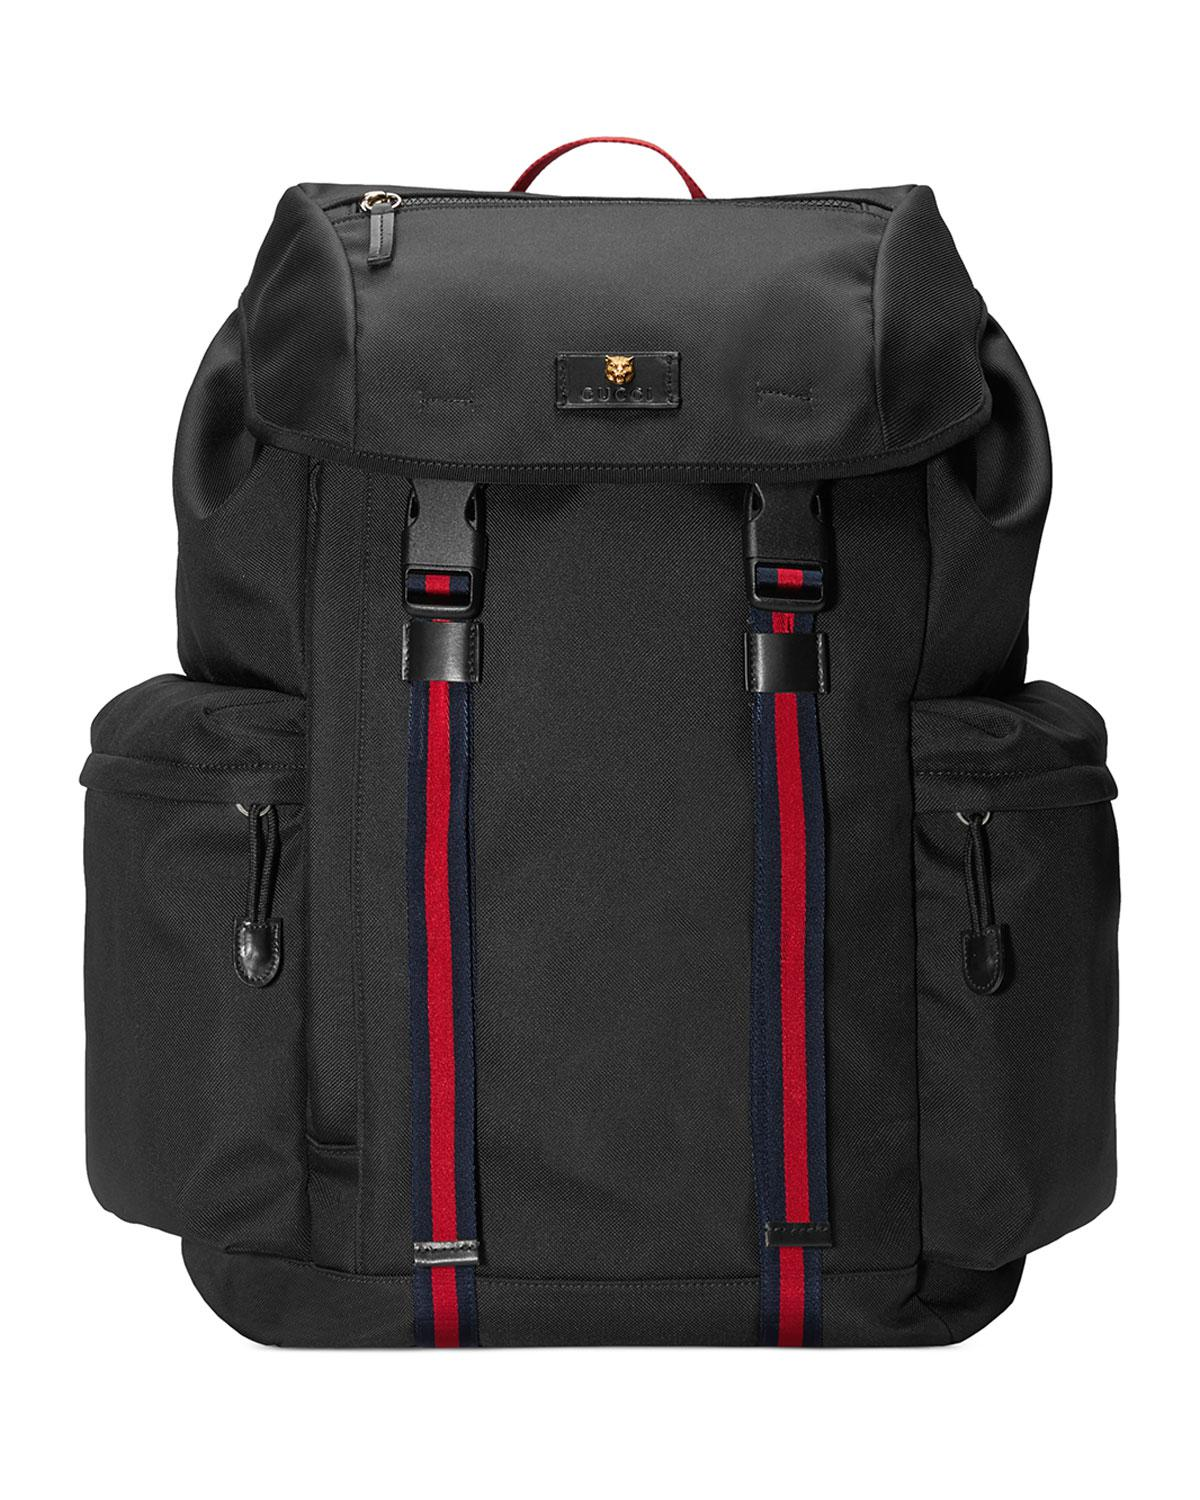 Lyst - Gucci Men s Techno-canvas Flap Backpack in Black for Men b32bd5a8108c1